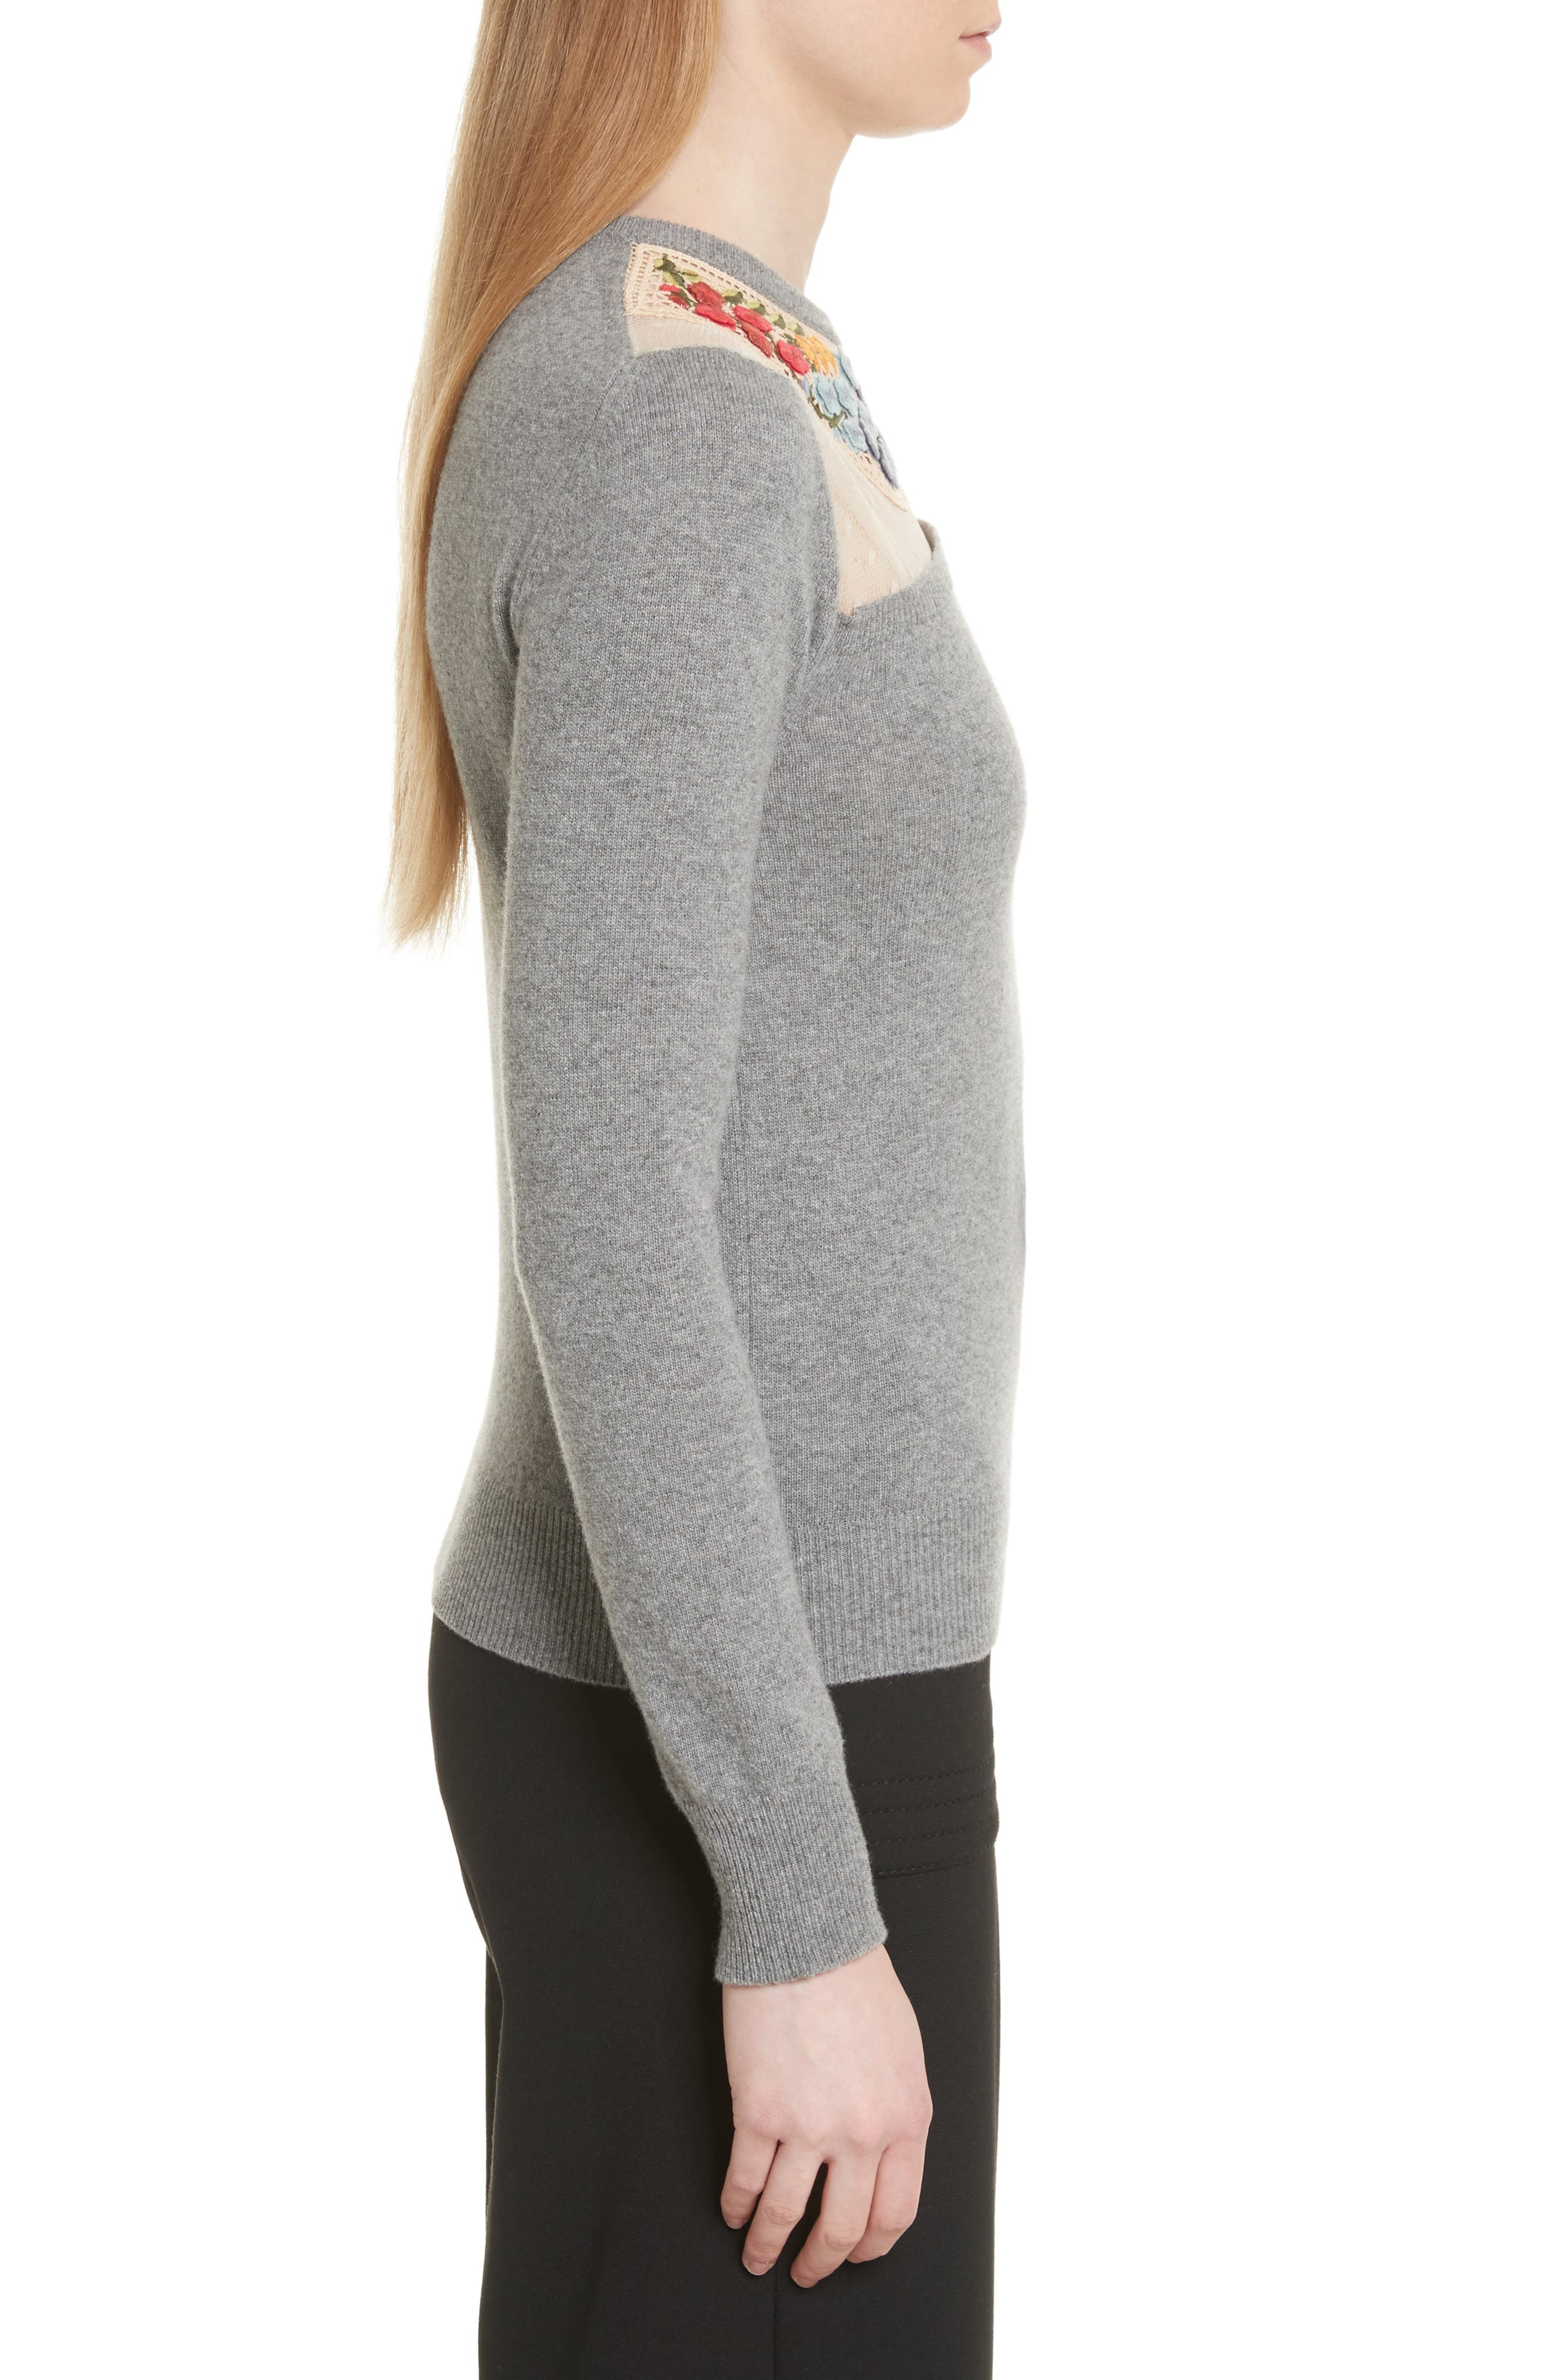 Macramé & Floral Embellished Wool Sweater,                             Alternate thumbnail 3, color,                             030